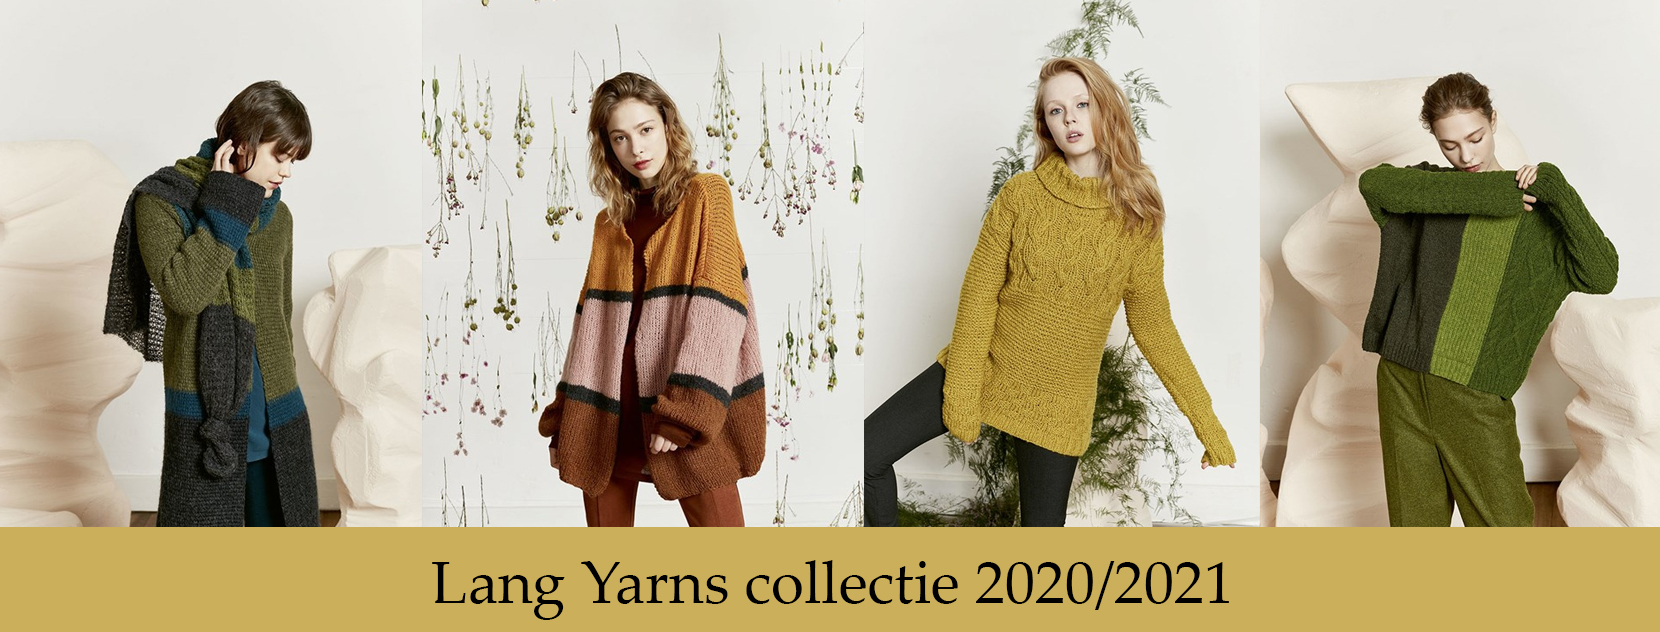 Lang Yarns Collectie